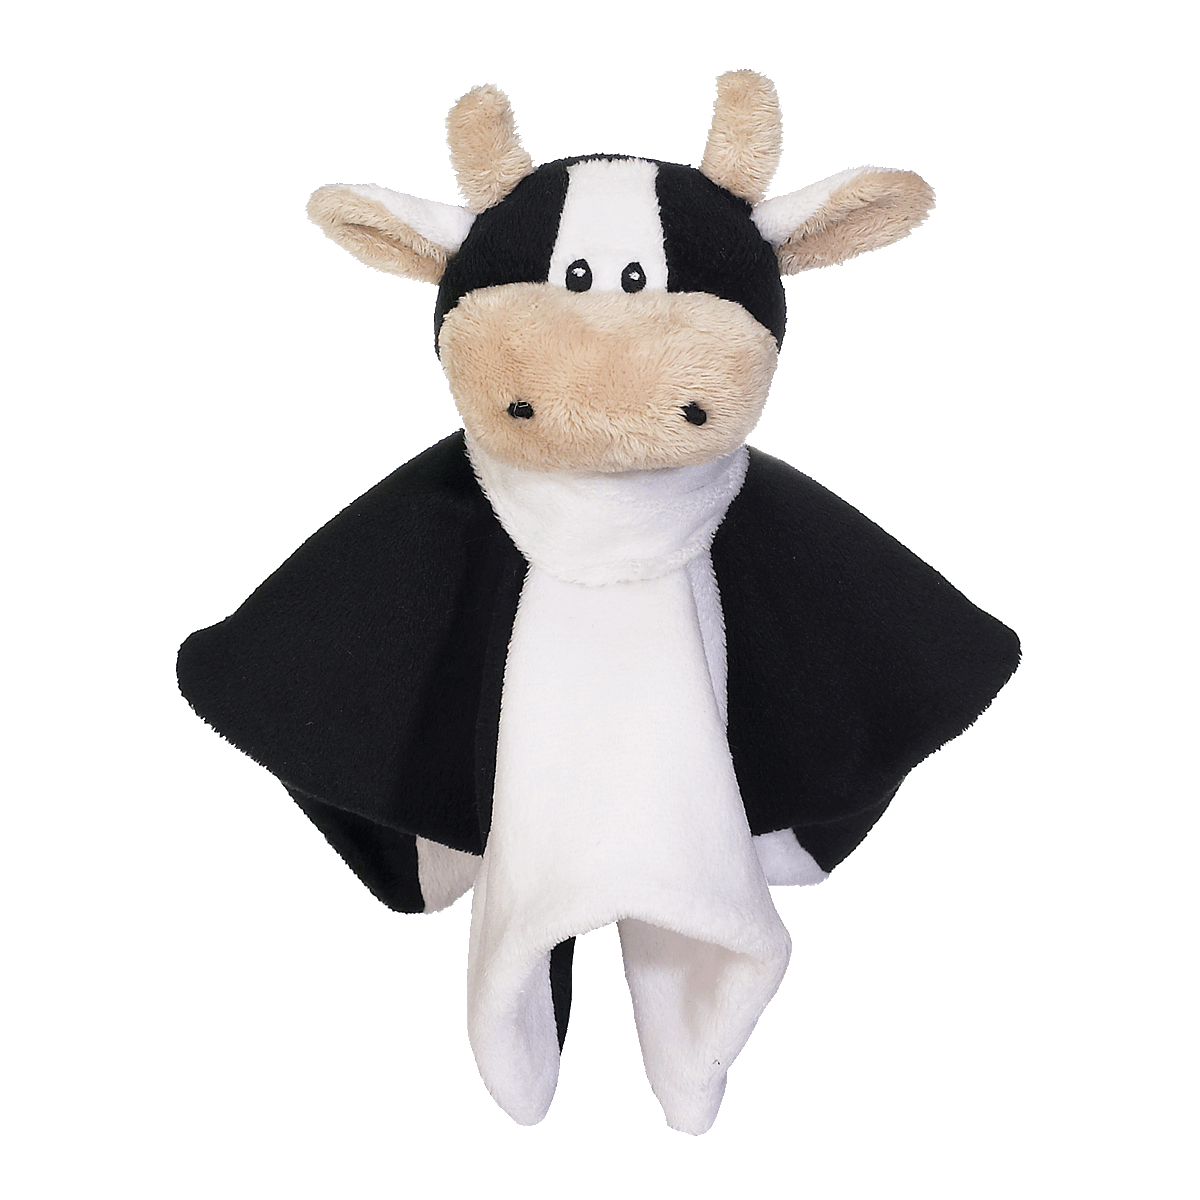 Embroider Buddy® – Wee Blankey MooMoo Buddy Cow